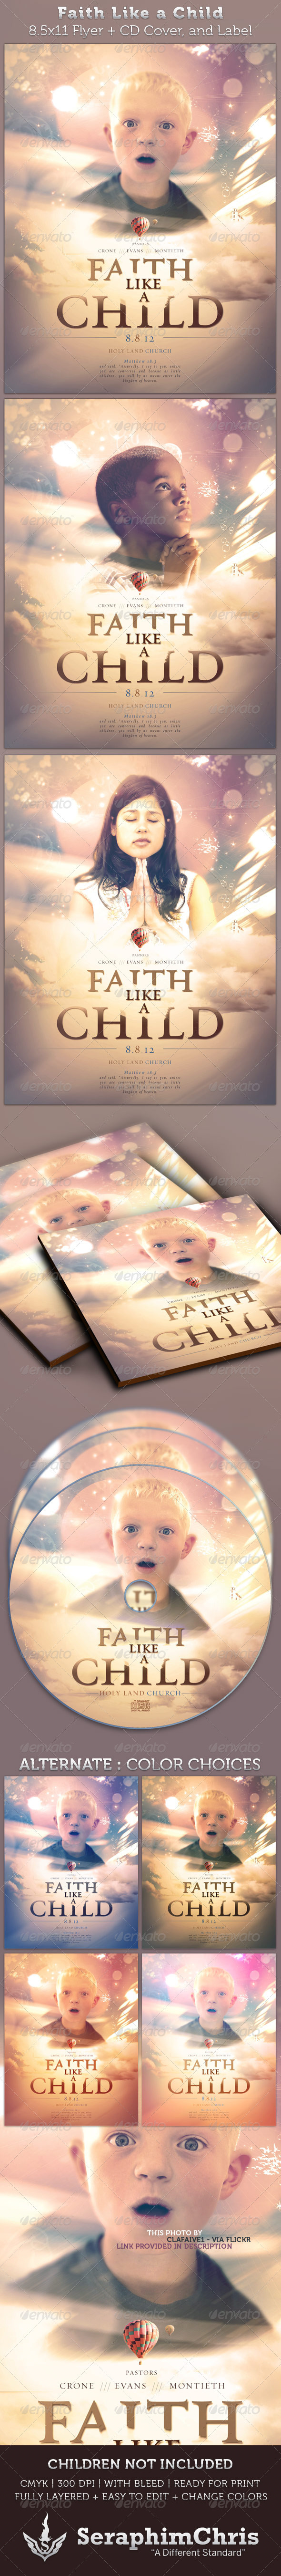 Faith Like A Child Full Page Flyer and CD Cover - Church Flyers